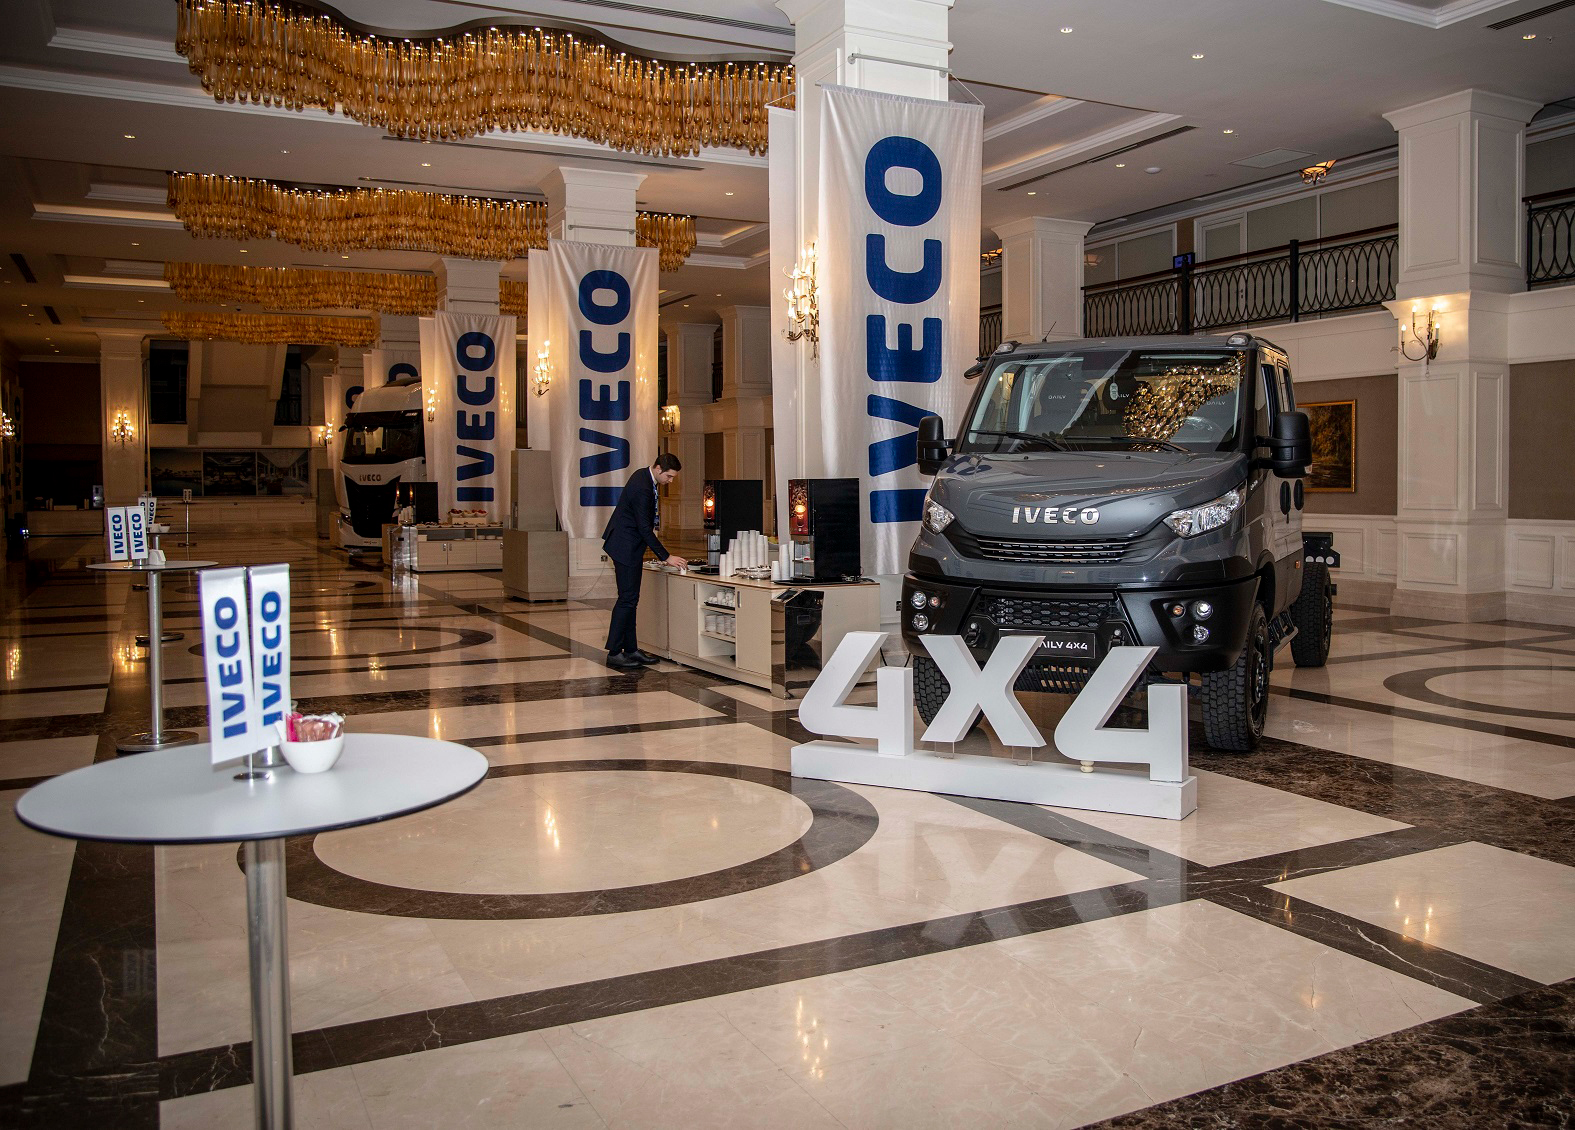 iveco-daily-4x4-001.jpg